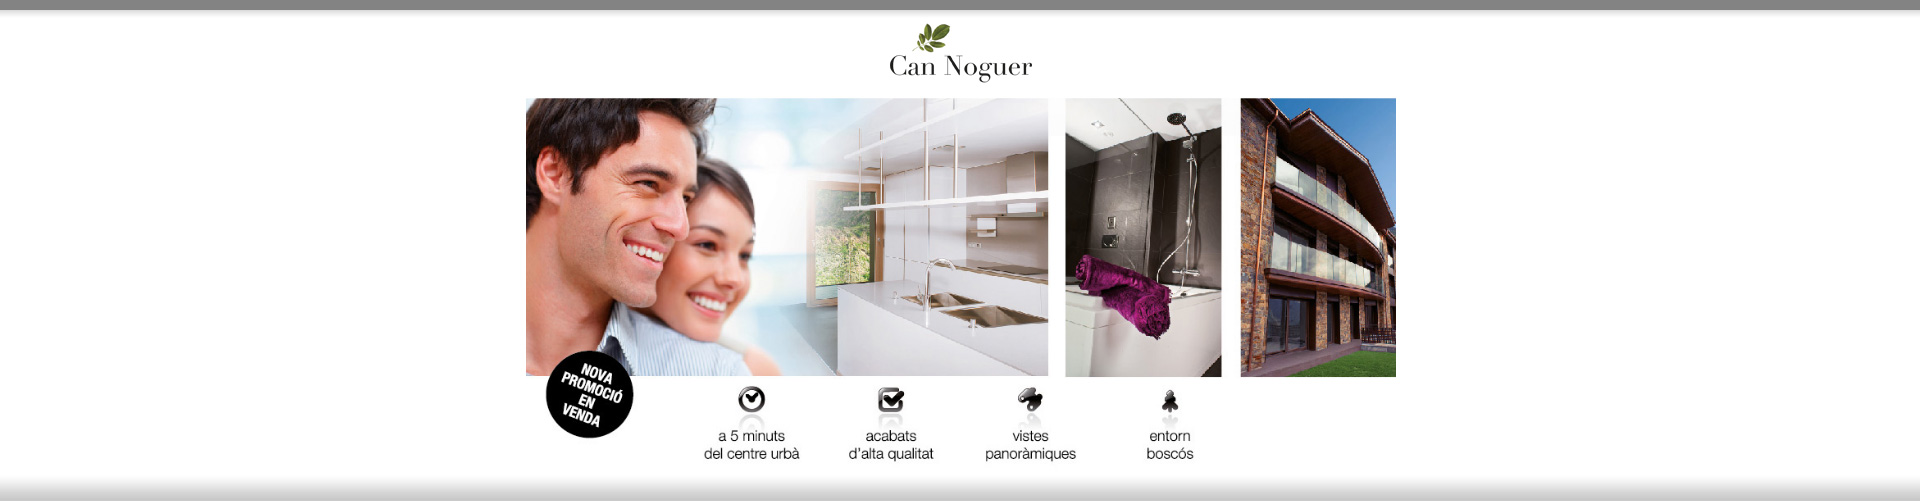 img_promo_can_noguer_3b